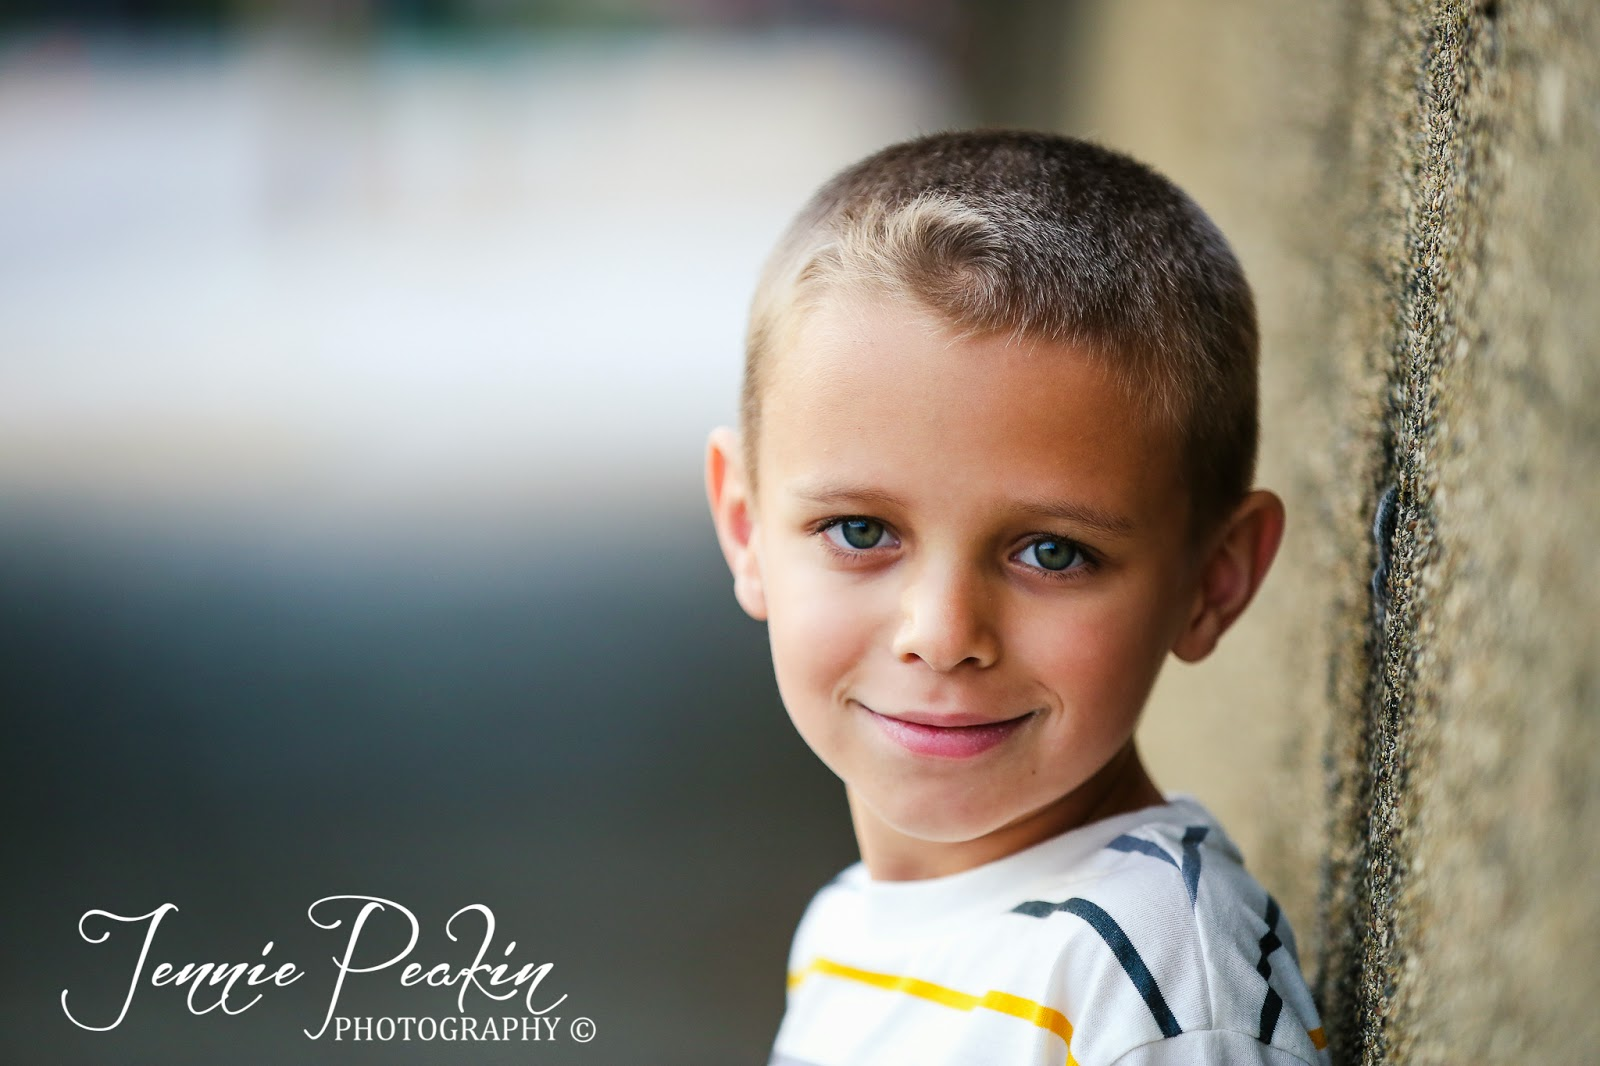 Jennie Peakin Photography Quad City Photographer The